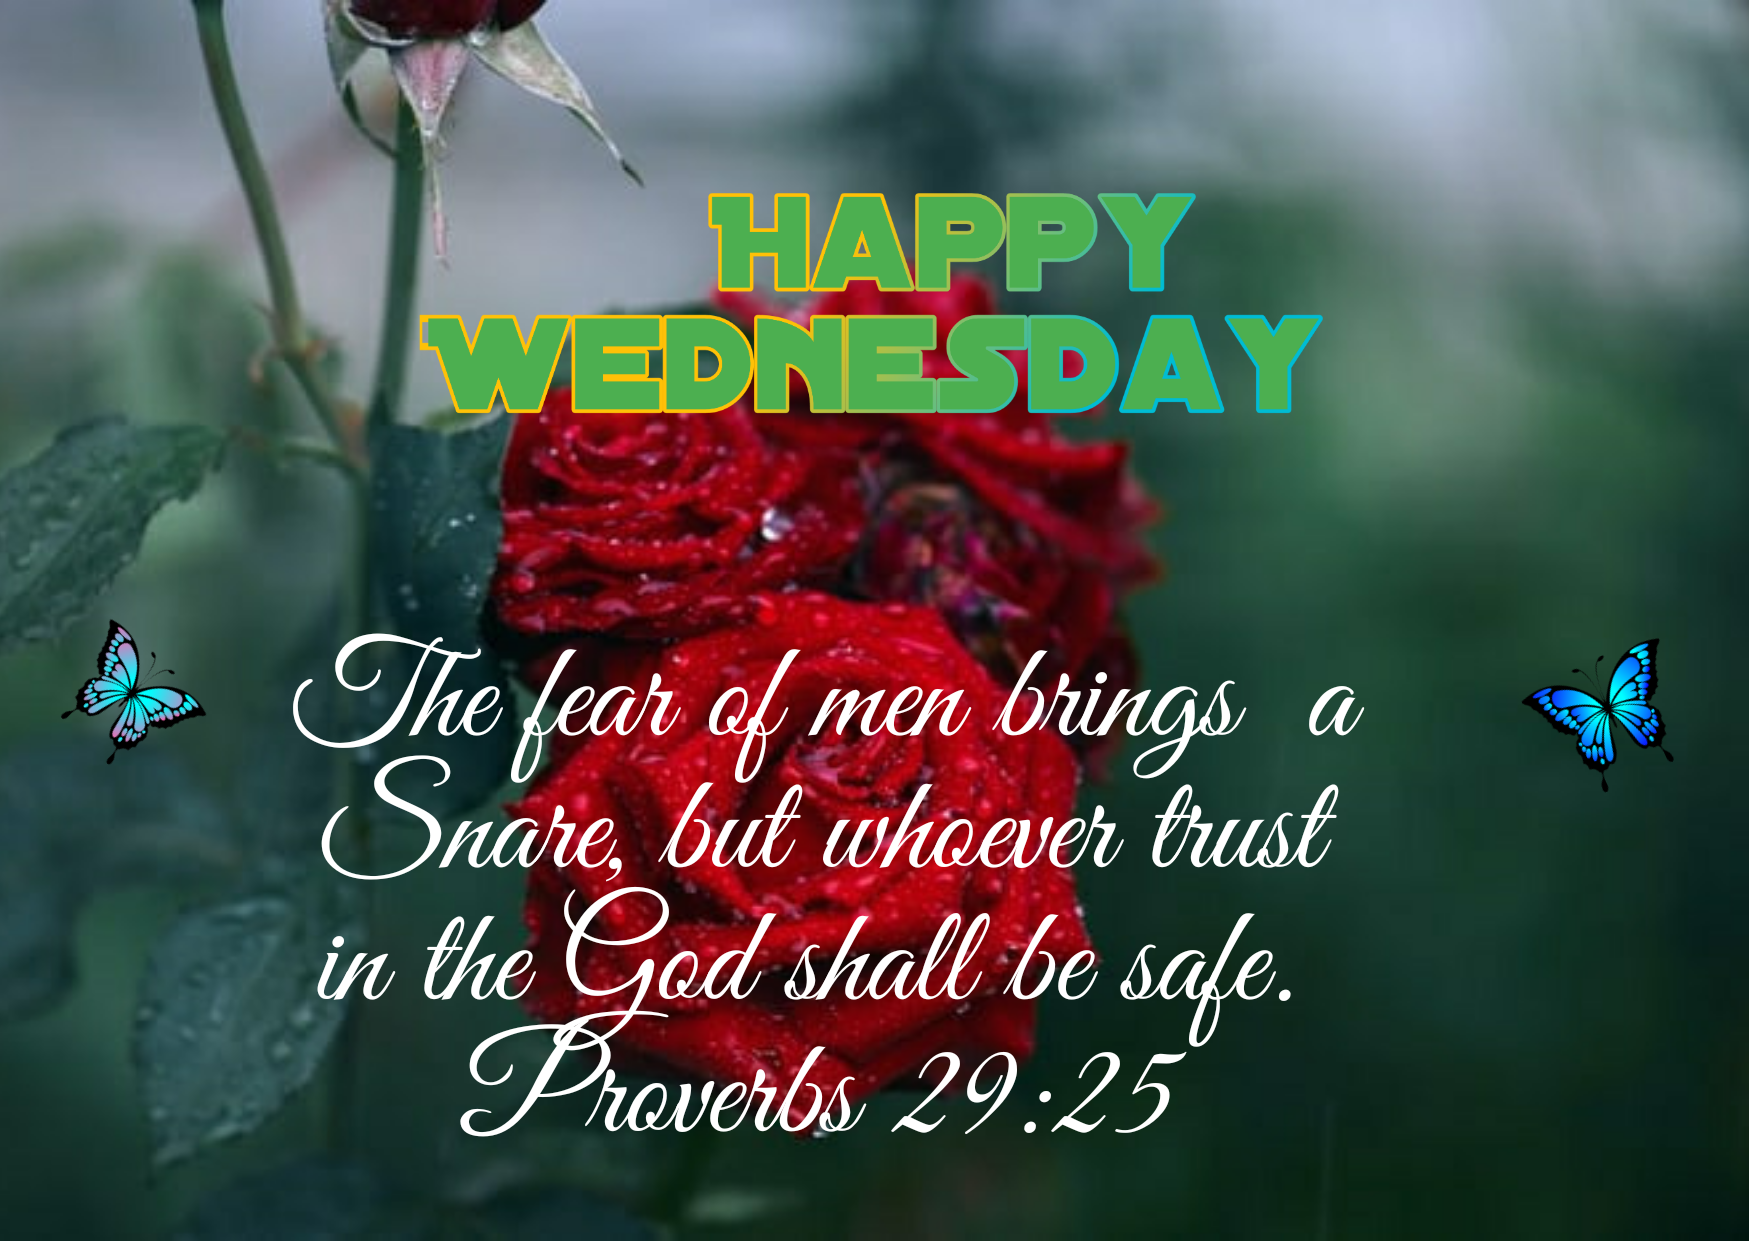 Happy Wednesday images, wishes, wallpaper, quotes, for whatsapp, Facebook,